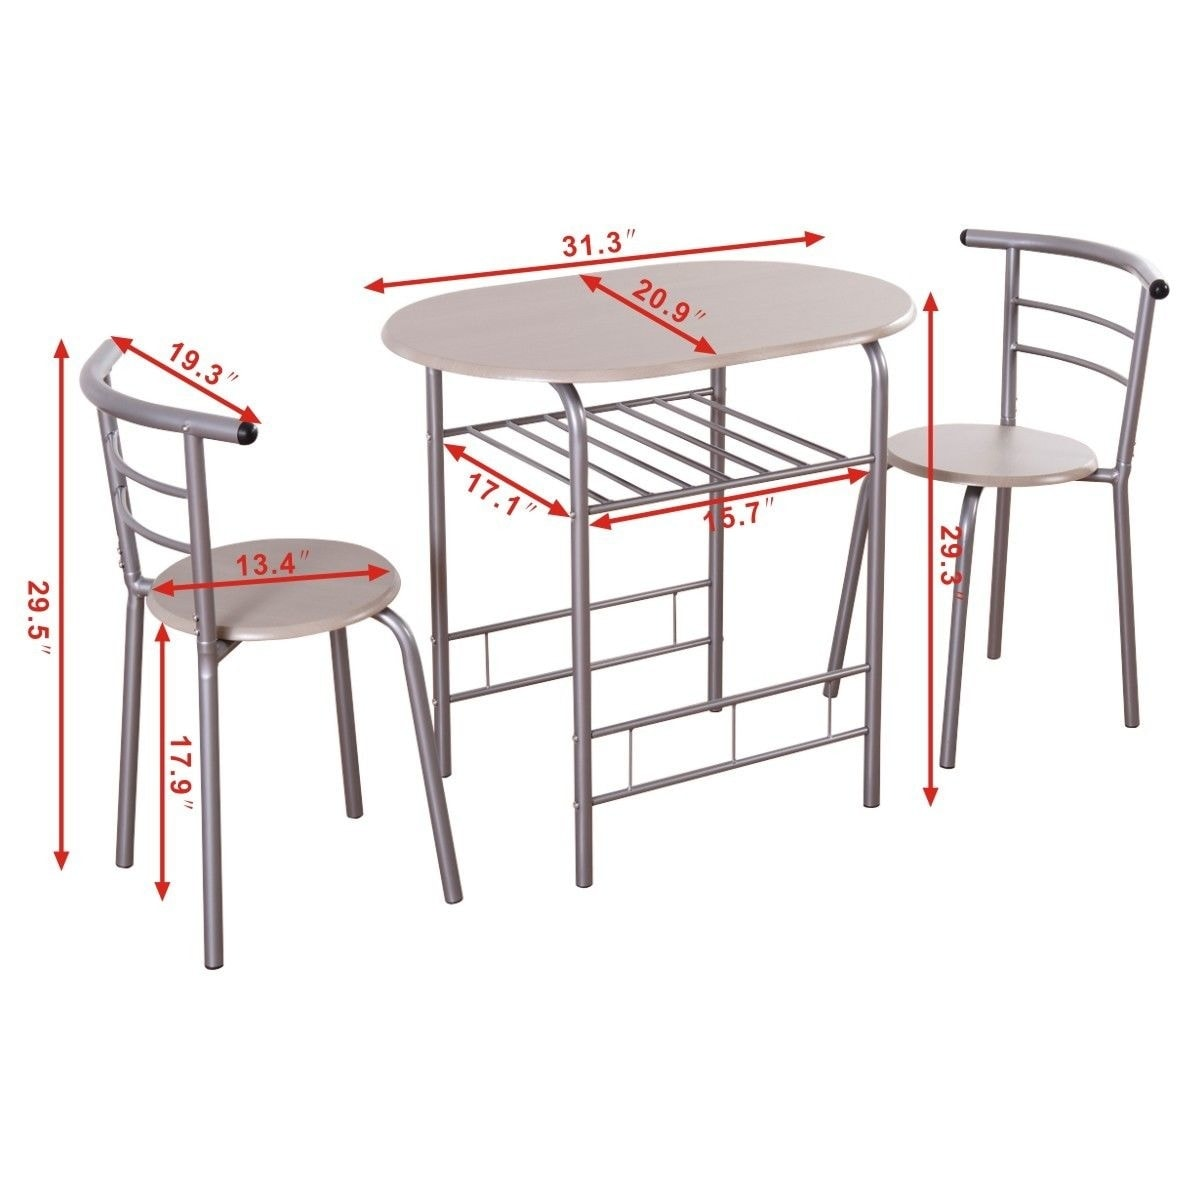 15f27afb7 Shop Costway 3 Piece Dining Set Table 2 Chairs Bistro Pub Home Kitchen  Breakfast Furniture - as pic - On Sale - Free Shipping Today - Overstock -  16689622